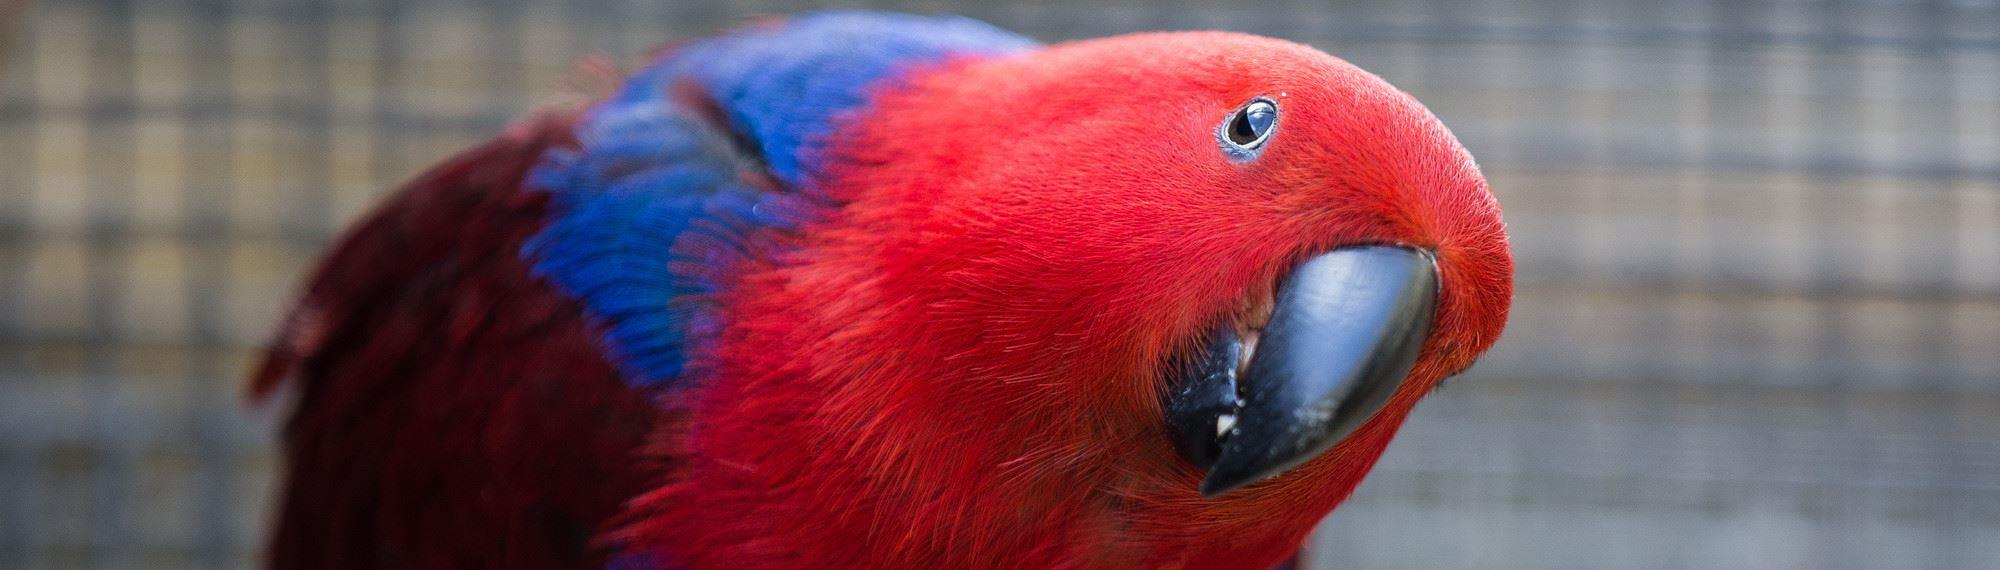 Female Eclectus parrot with head on side. She has a bright red coloured head, blue shoulders and deep red wings.